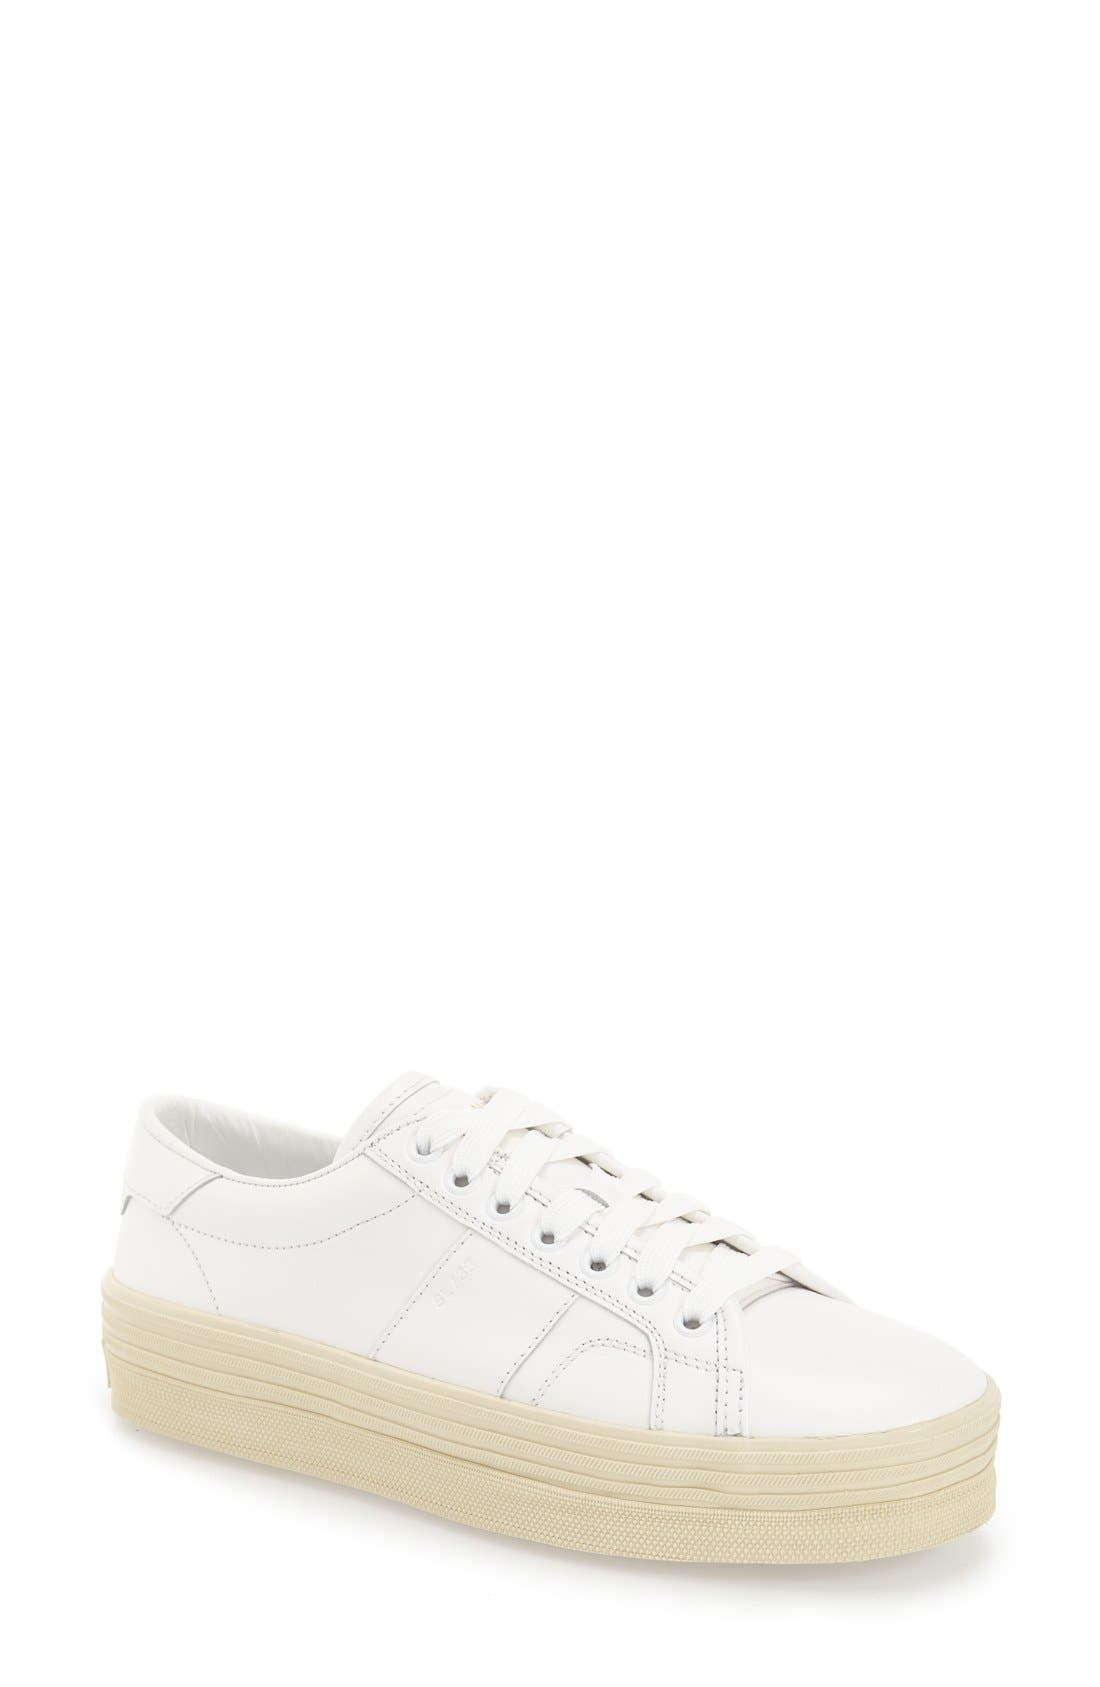 Alternate Image 1 Selected - Saint Laurent Double Sole Sneaker (Women)